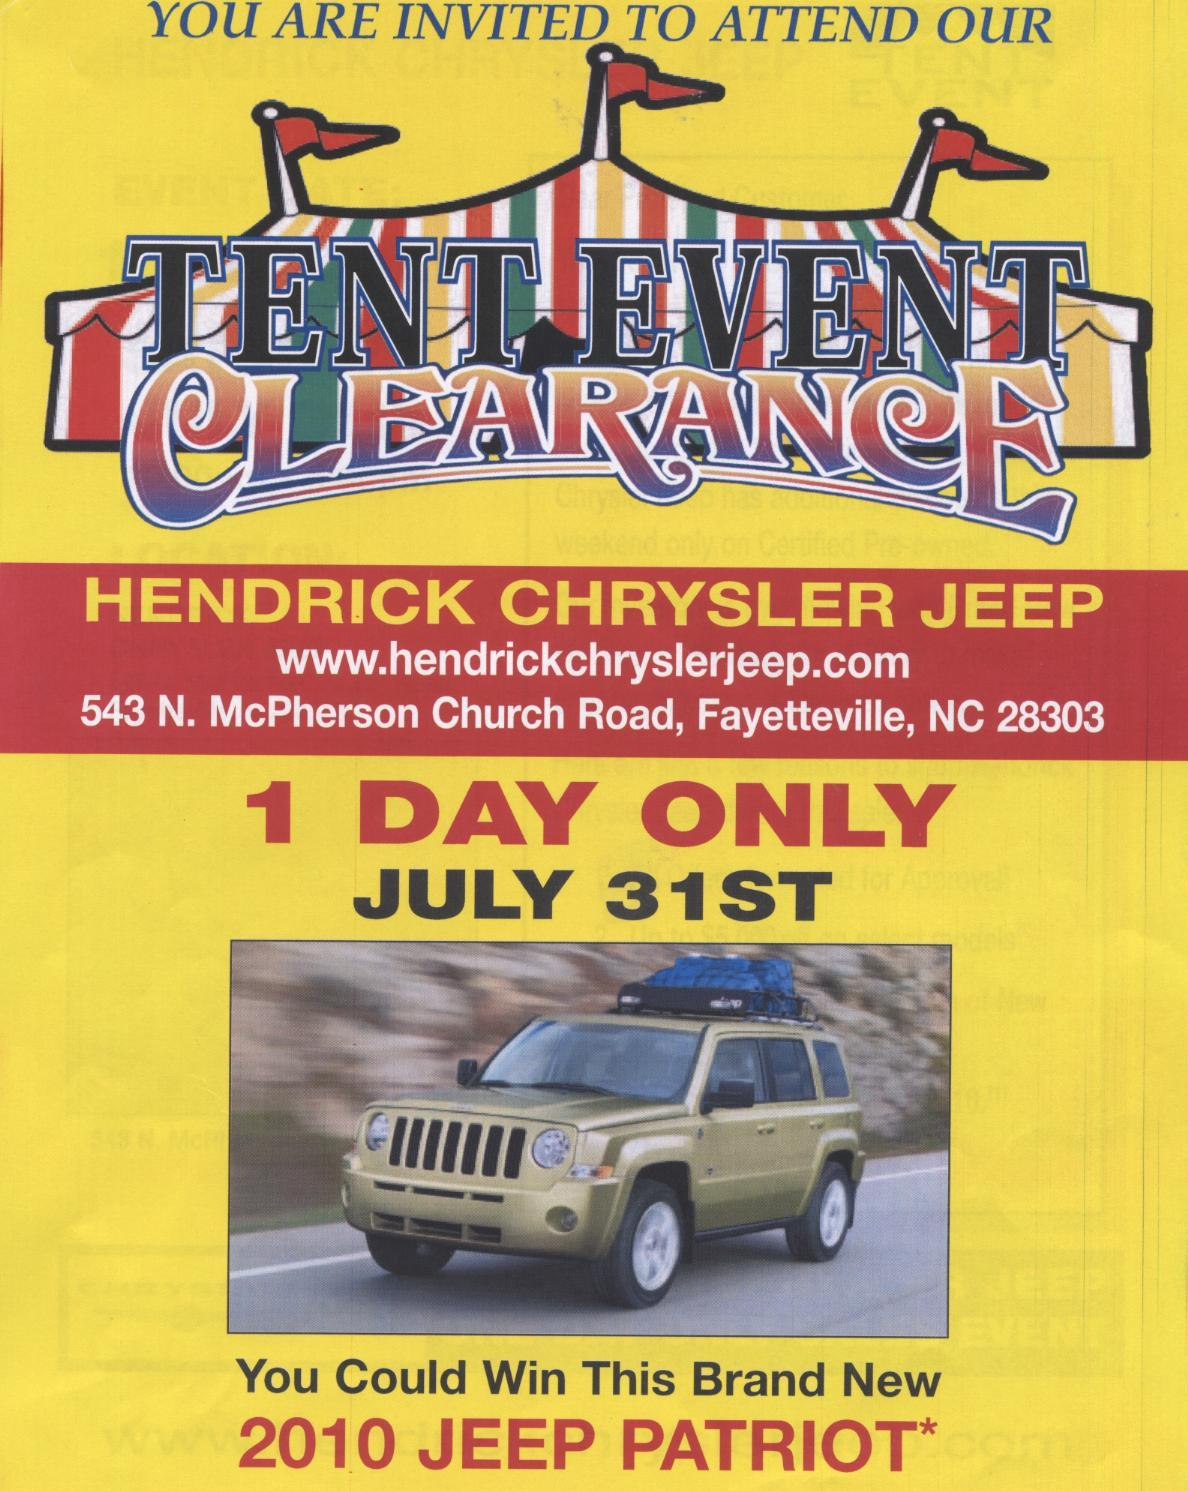 hendrick chrysler jeep tent event clearance. Cars Review. Best American Auto & Cars Review